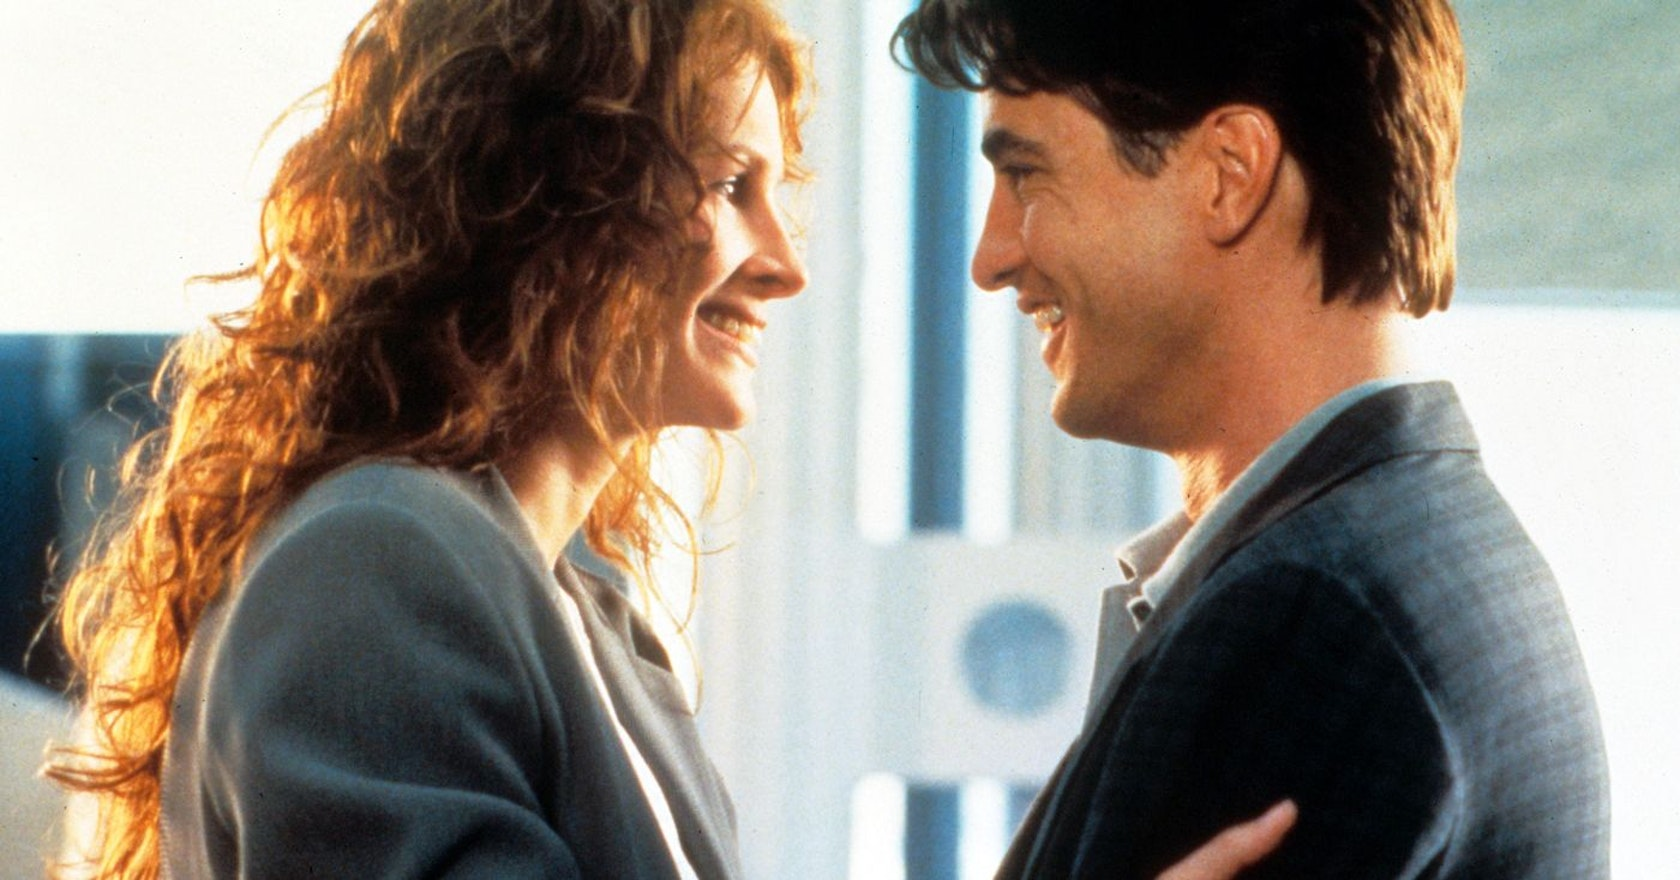 The most toxic romantic comedy storylines of all time